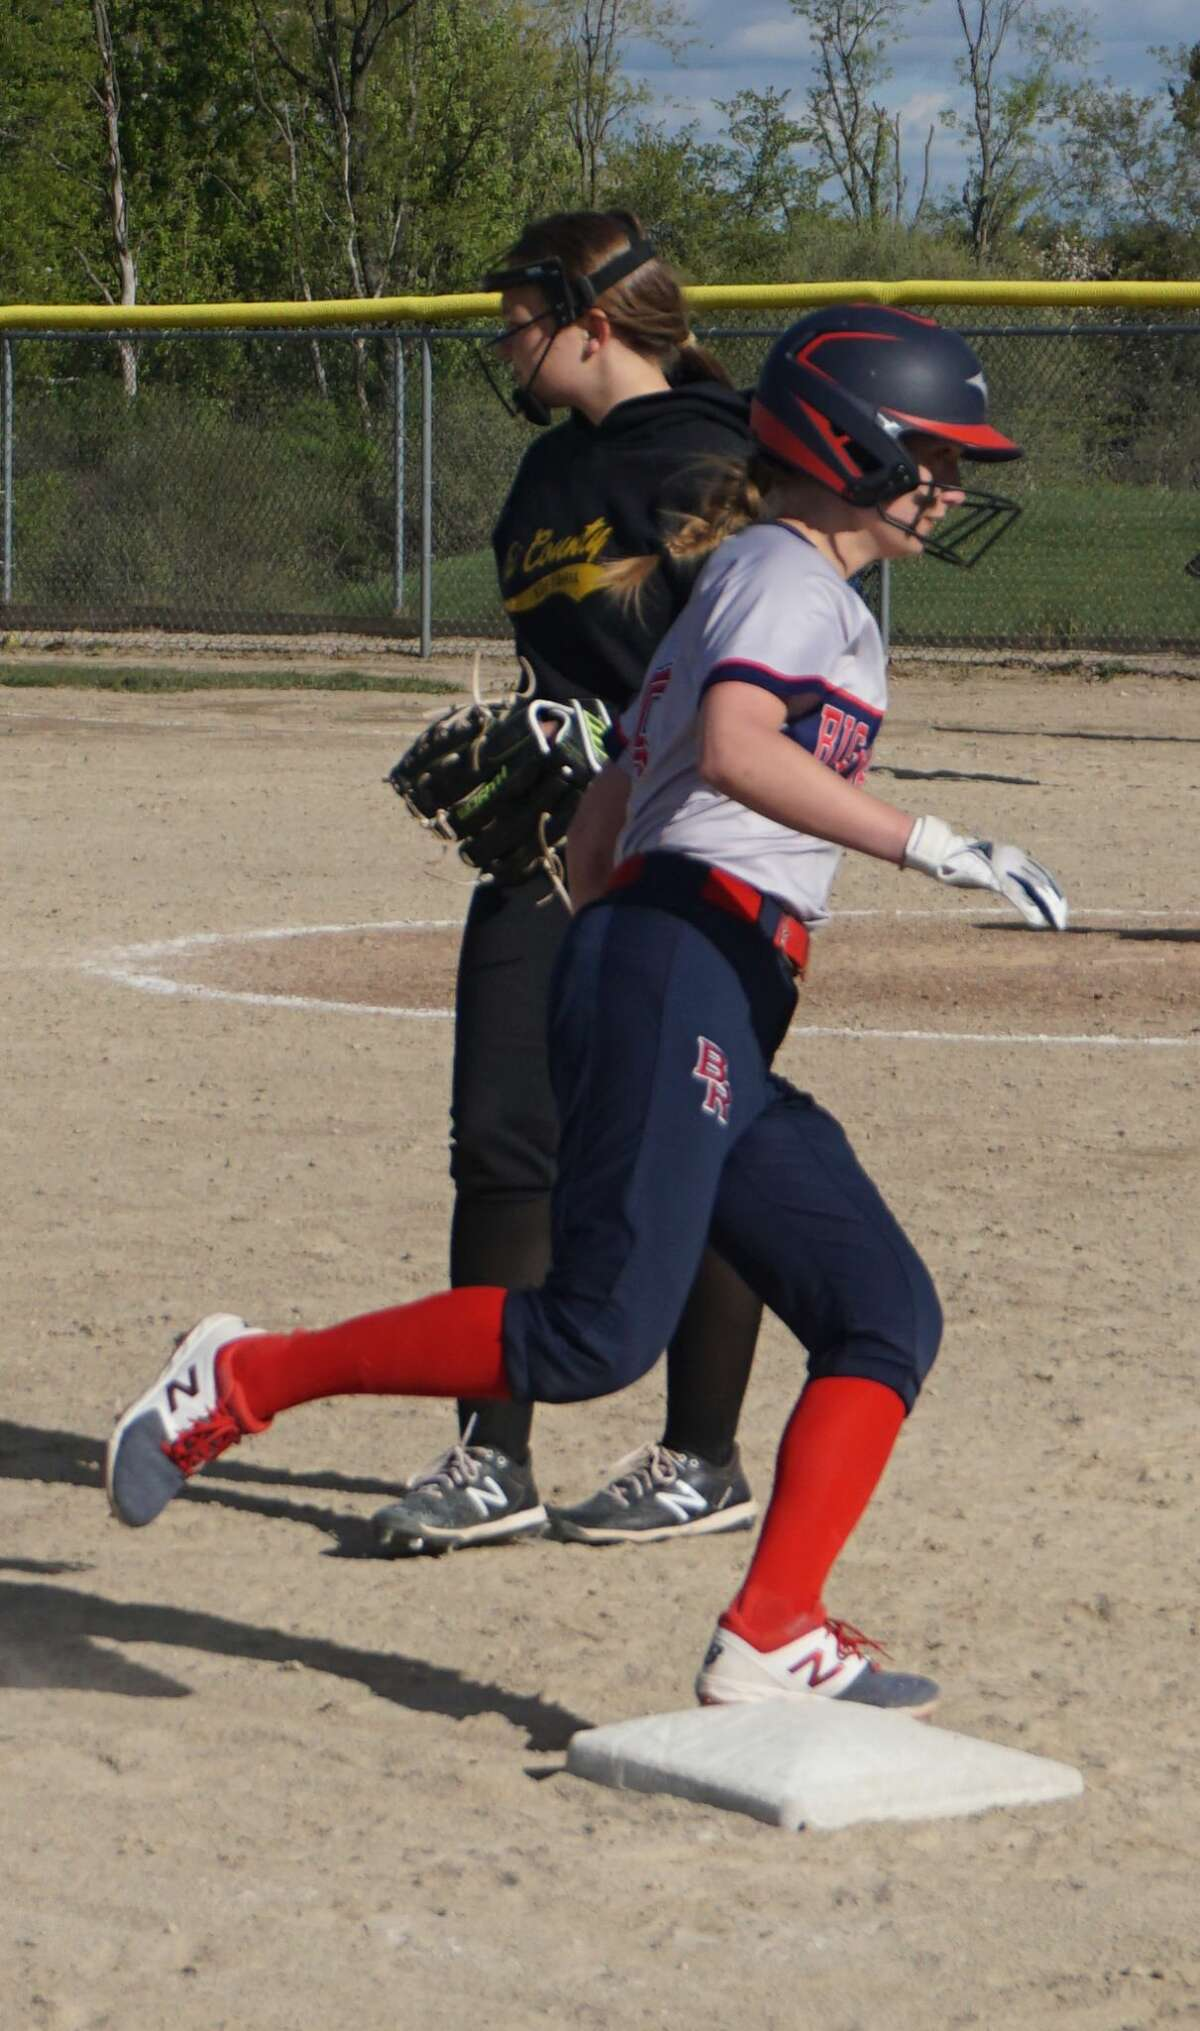 On Tuesday night, the Big Rapids softball team played host to Tri County, defeating the Vikings 19-0 over two games.